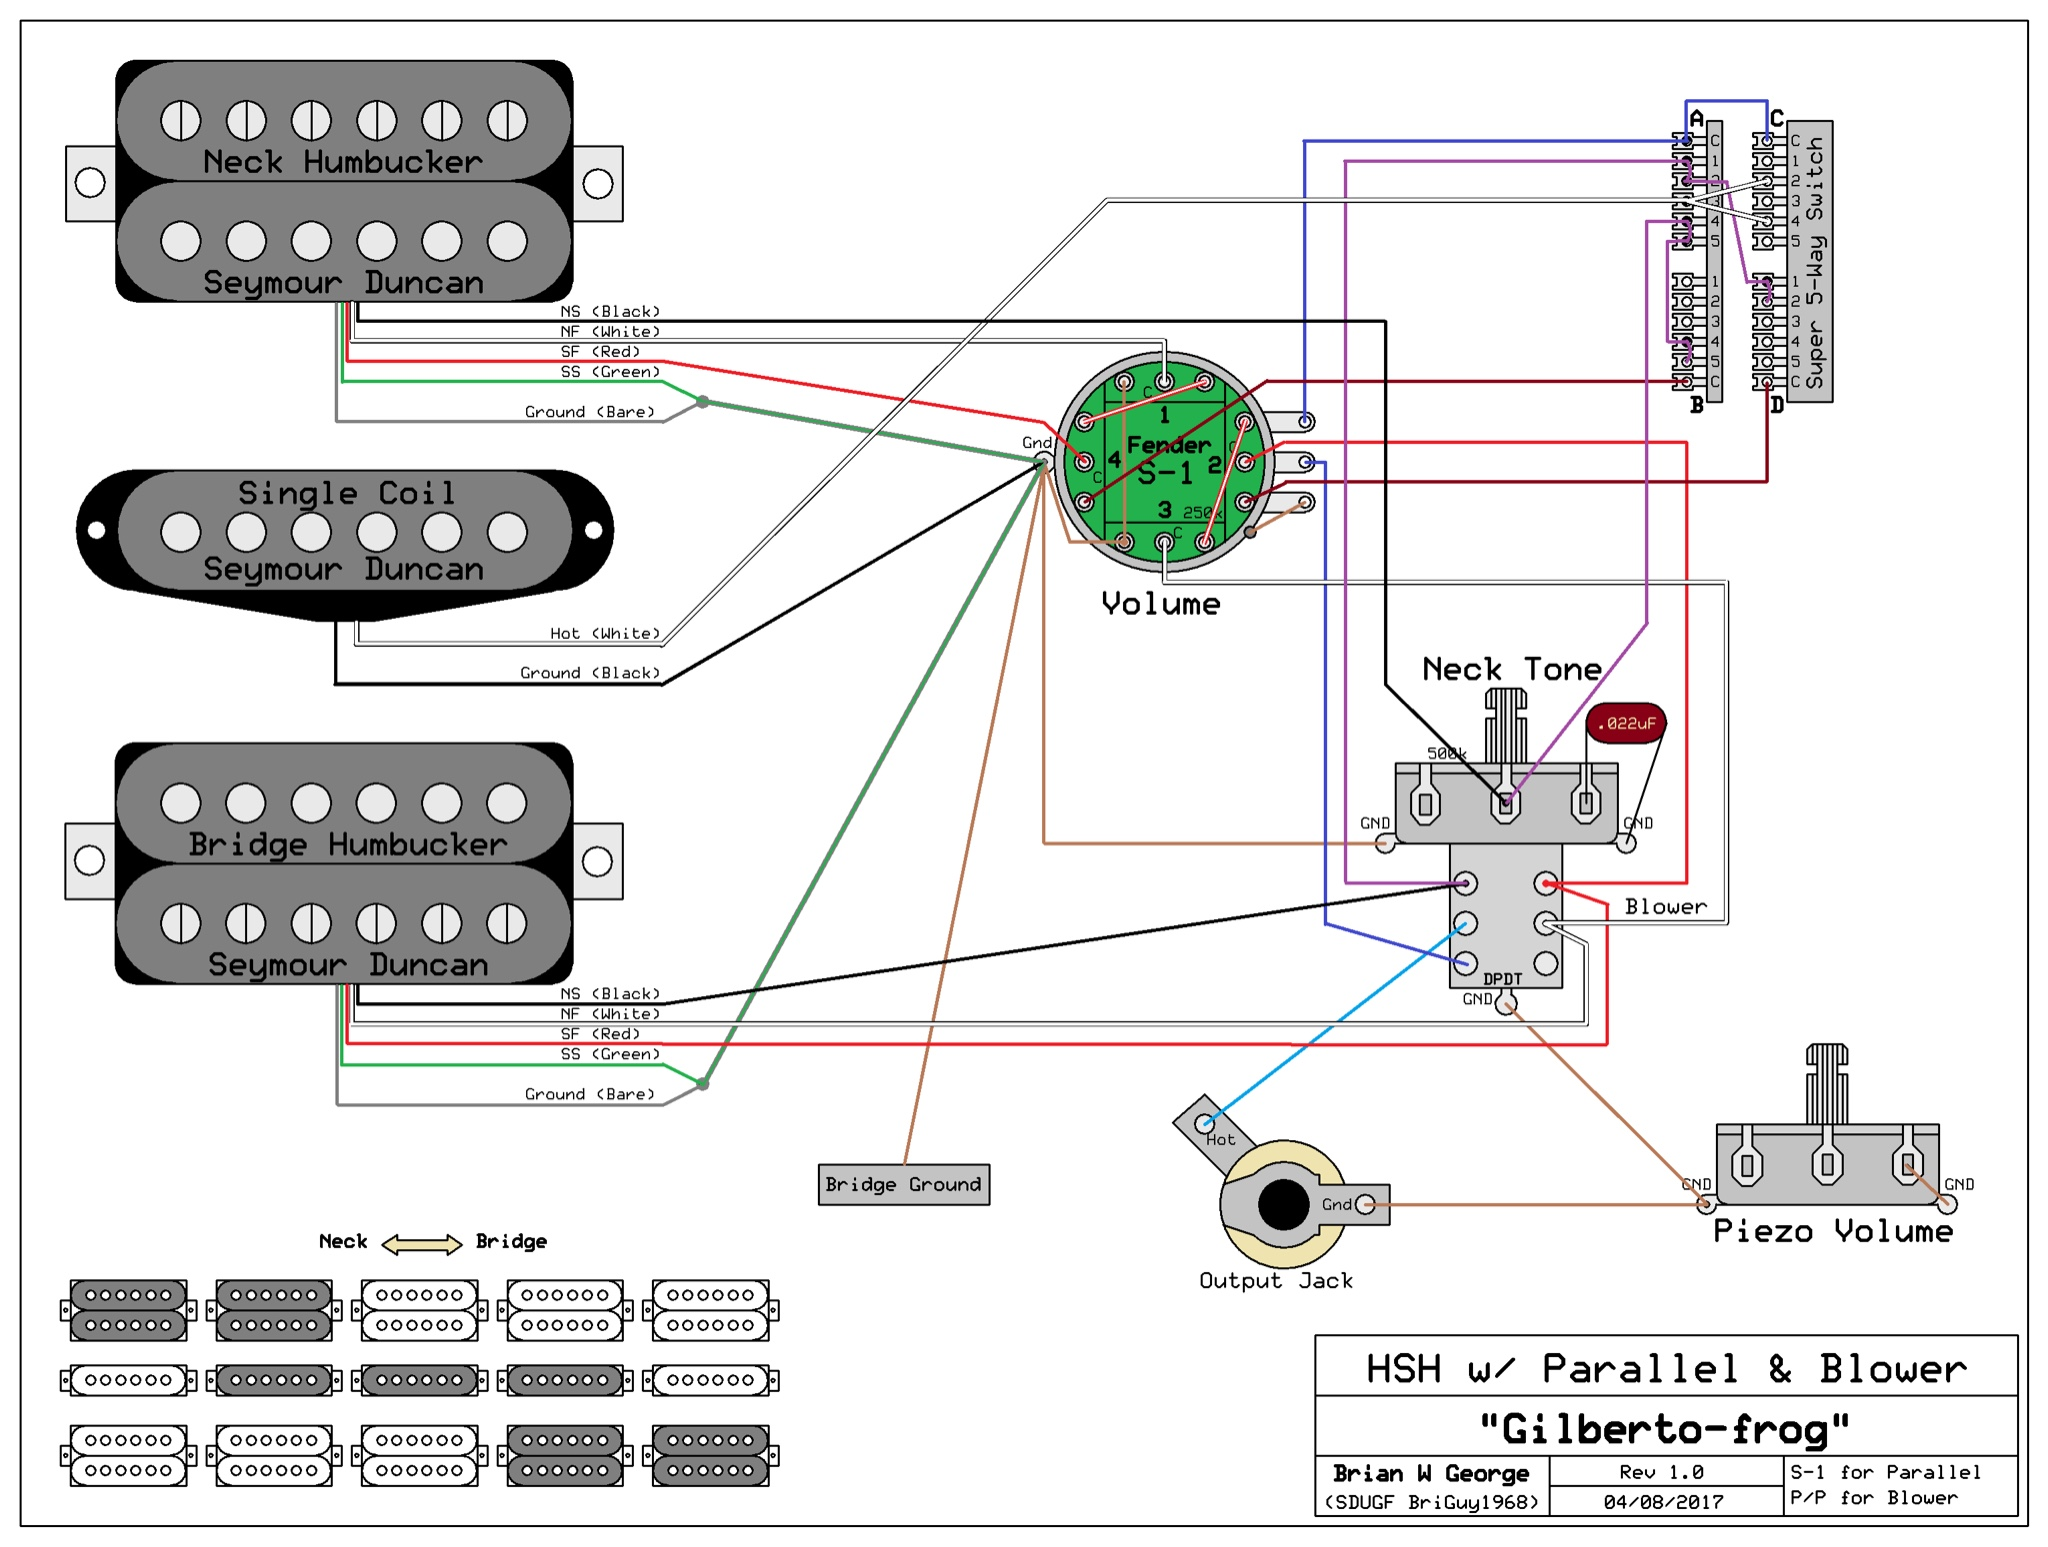 hsh s 1 and super switch parallel switching rh seymourduncan com hsh super switch wiring diagram EMG HSH Wiring-Diagram